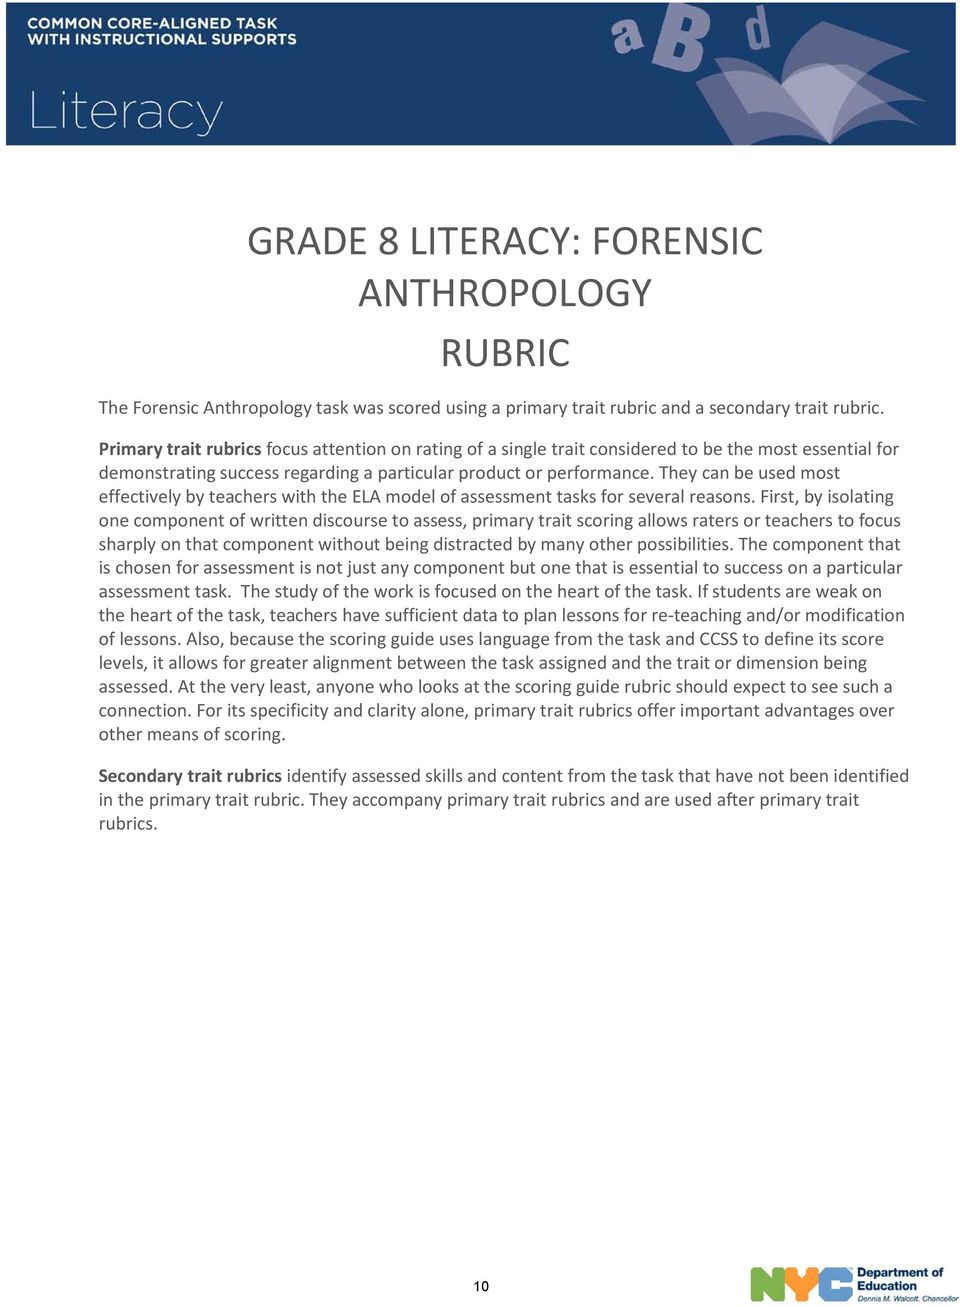 forensic knowledge tips meant for homework paper